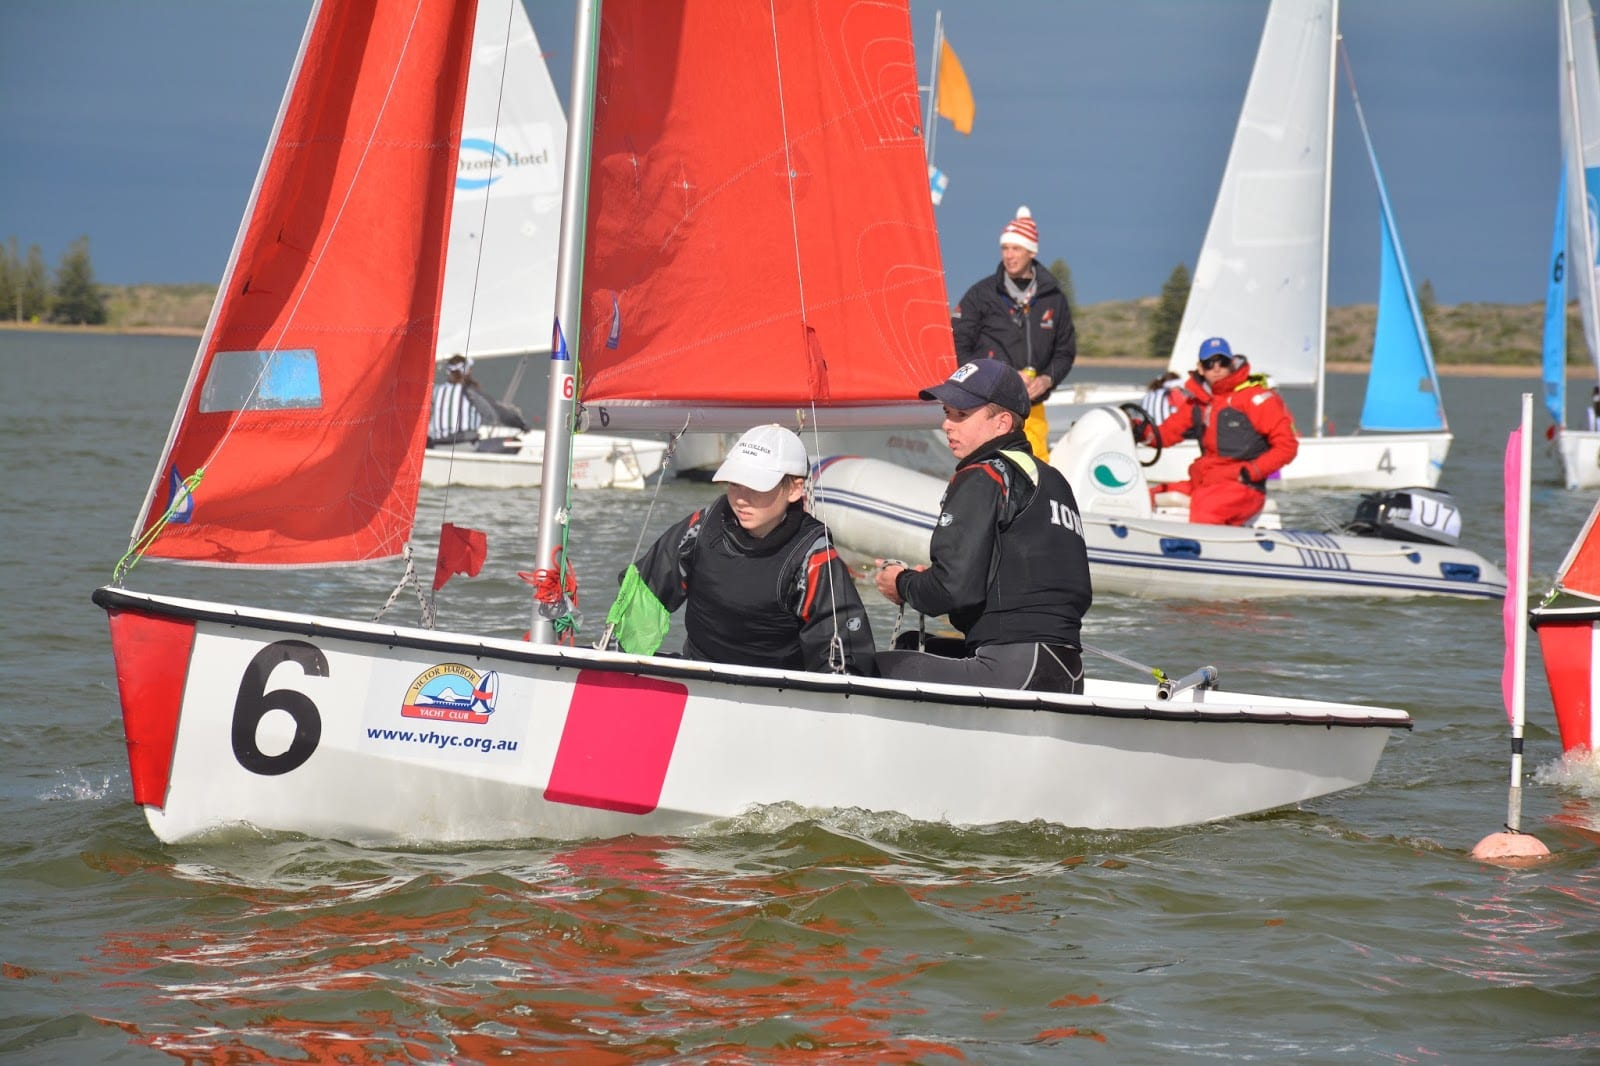 Action heats up in team sailing nationals